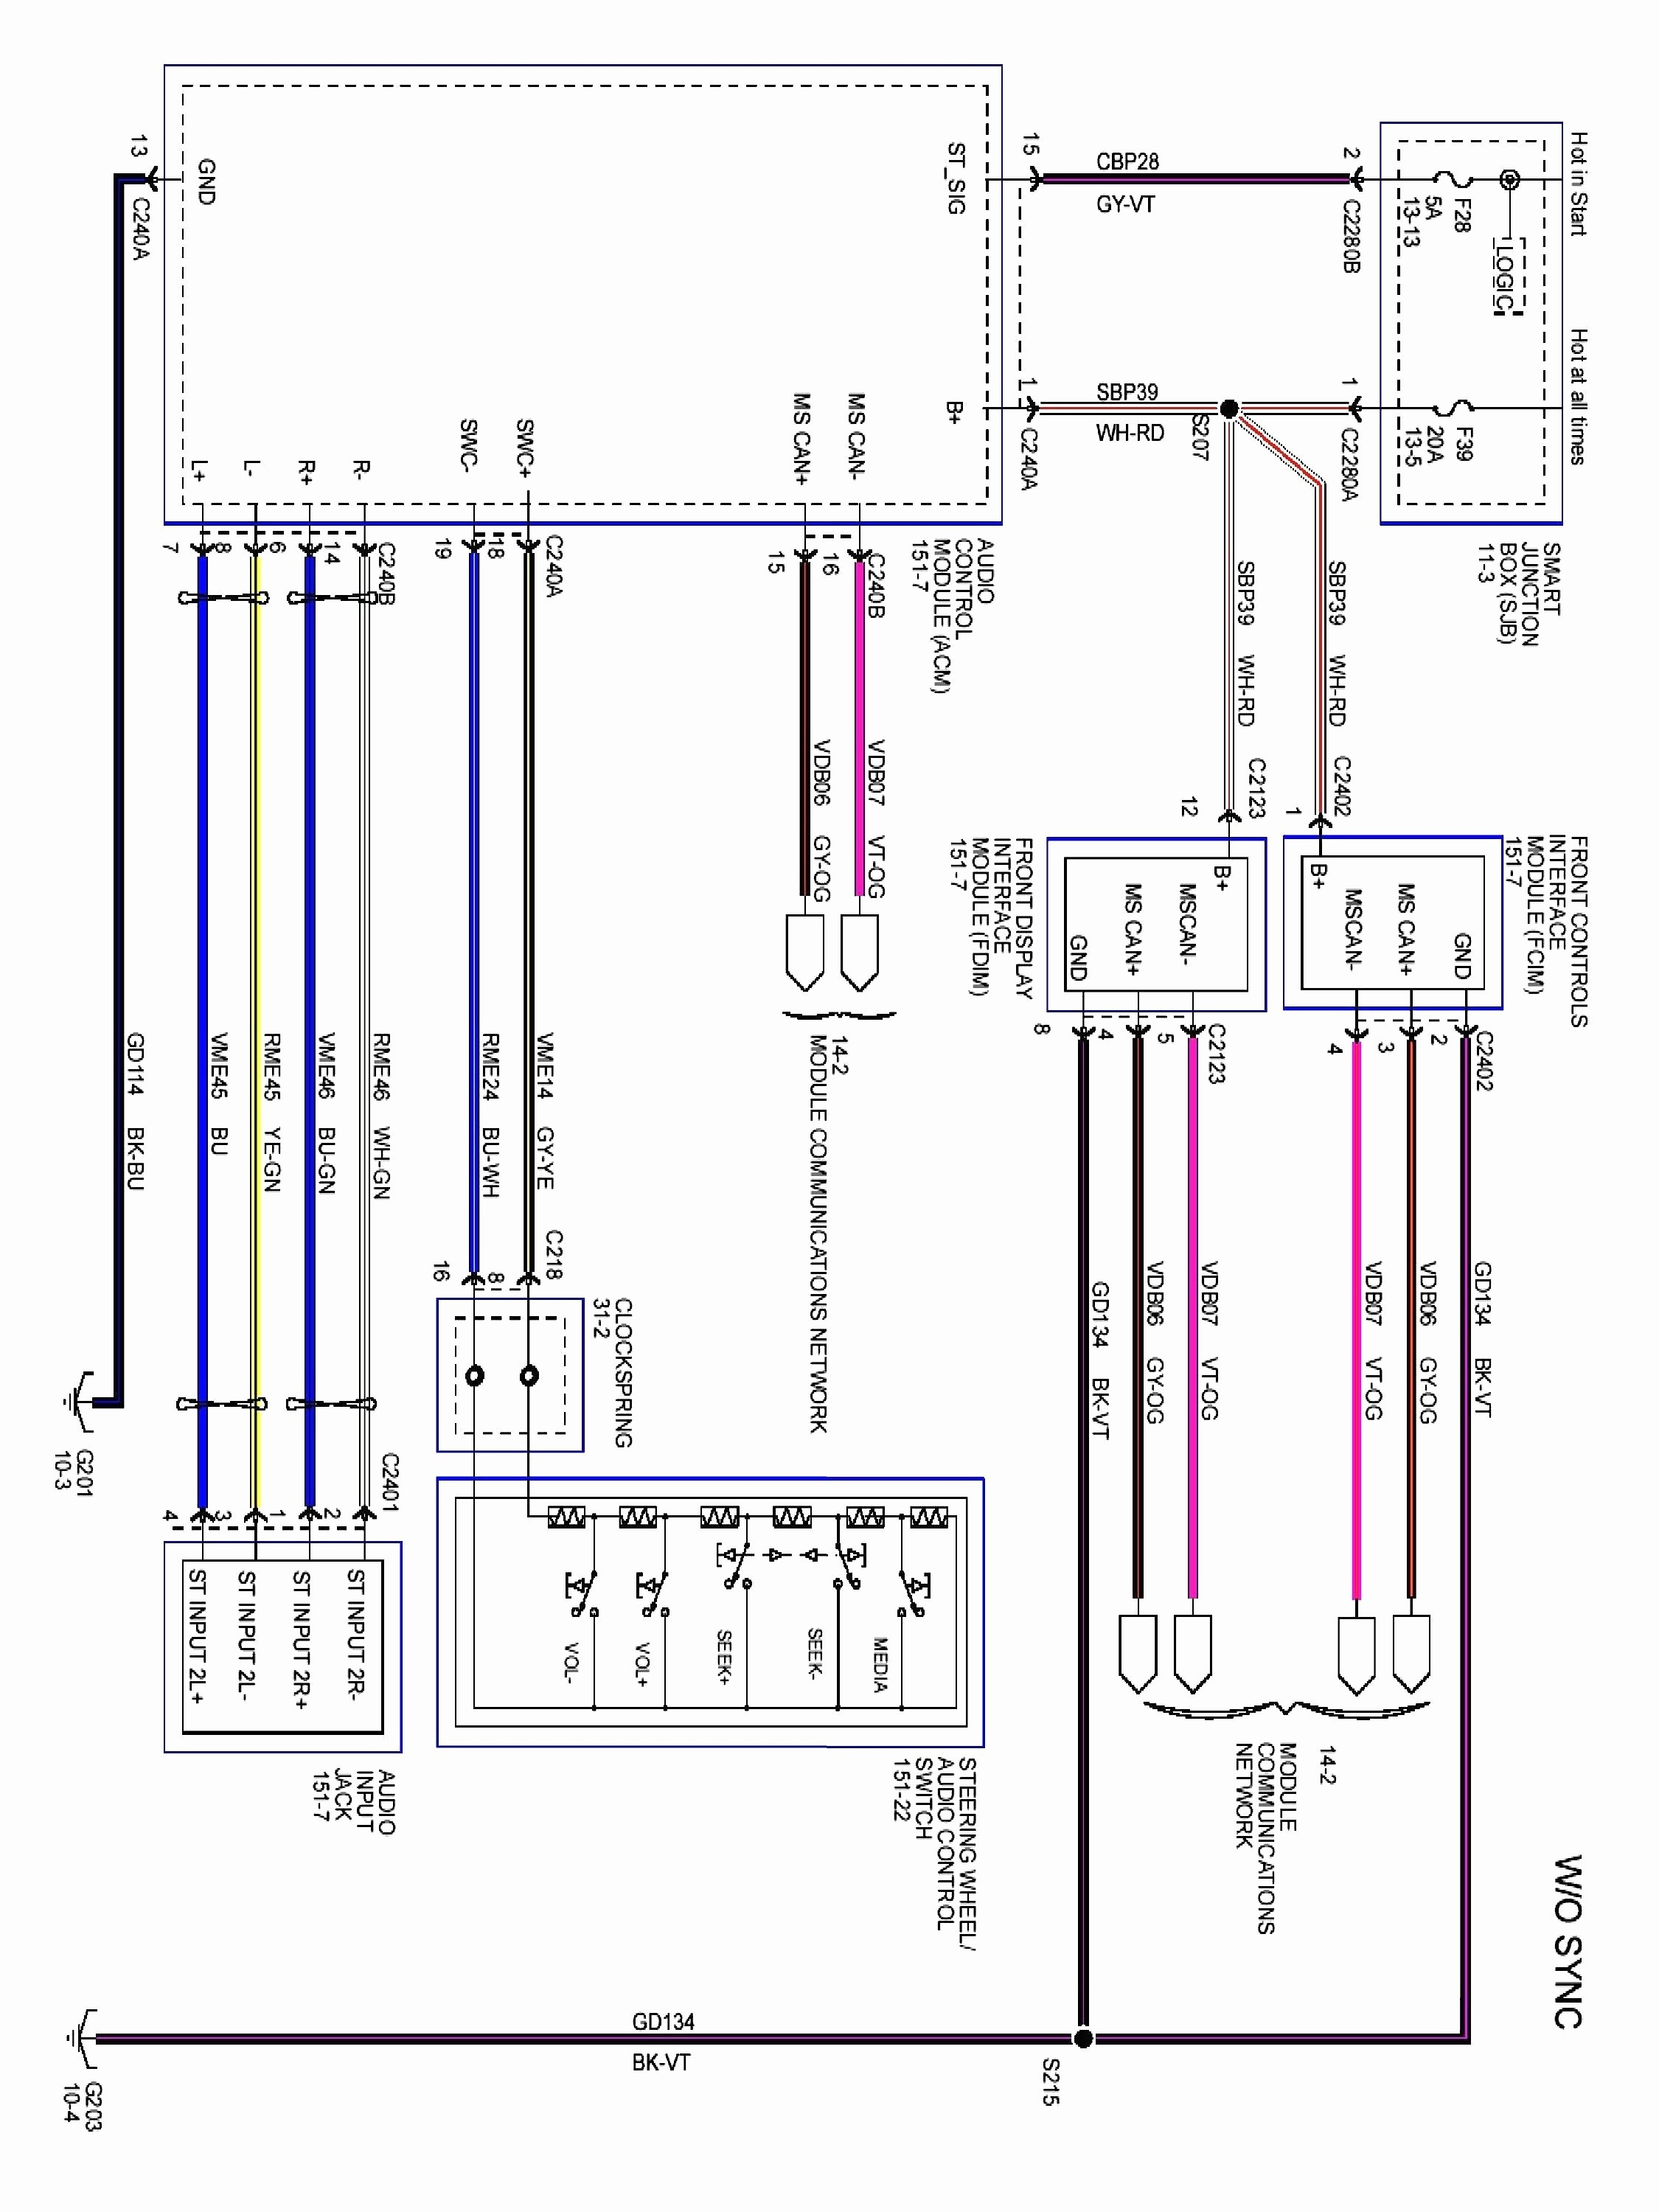 Auto Trans Diagram Wiring Diagram for Amplifier Car Stereo Best Amplifier Wiring Of Auto Trans Diagram